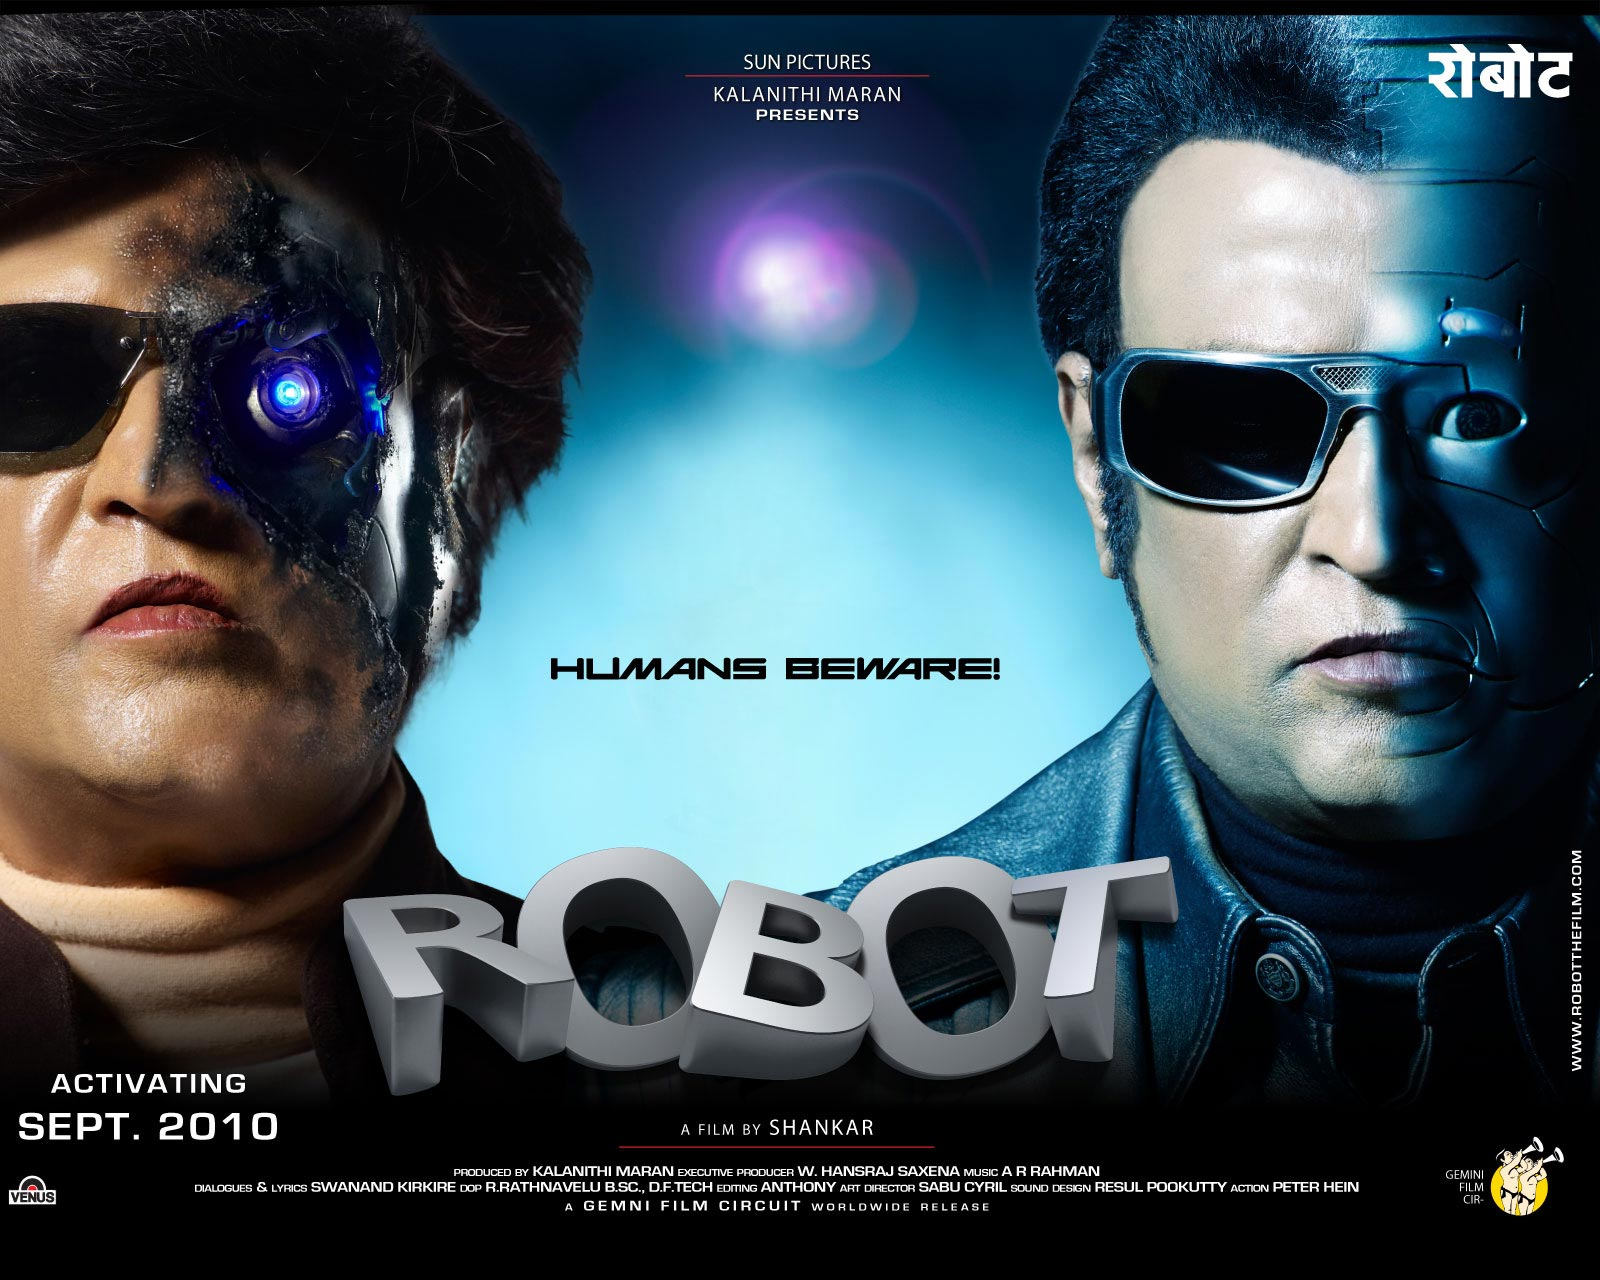 Photo Credit http://obamapacman.com/2010/09/enthiran-epic-robot-film-mashup-matrix-irobot-terminator-bollywood-indian-dancing/terminator-style-shanker-epic-robot-film-enthiran-movie-poster/